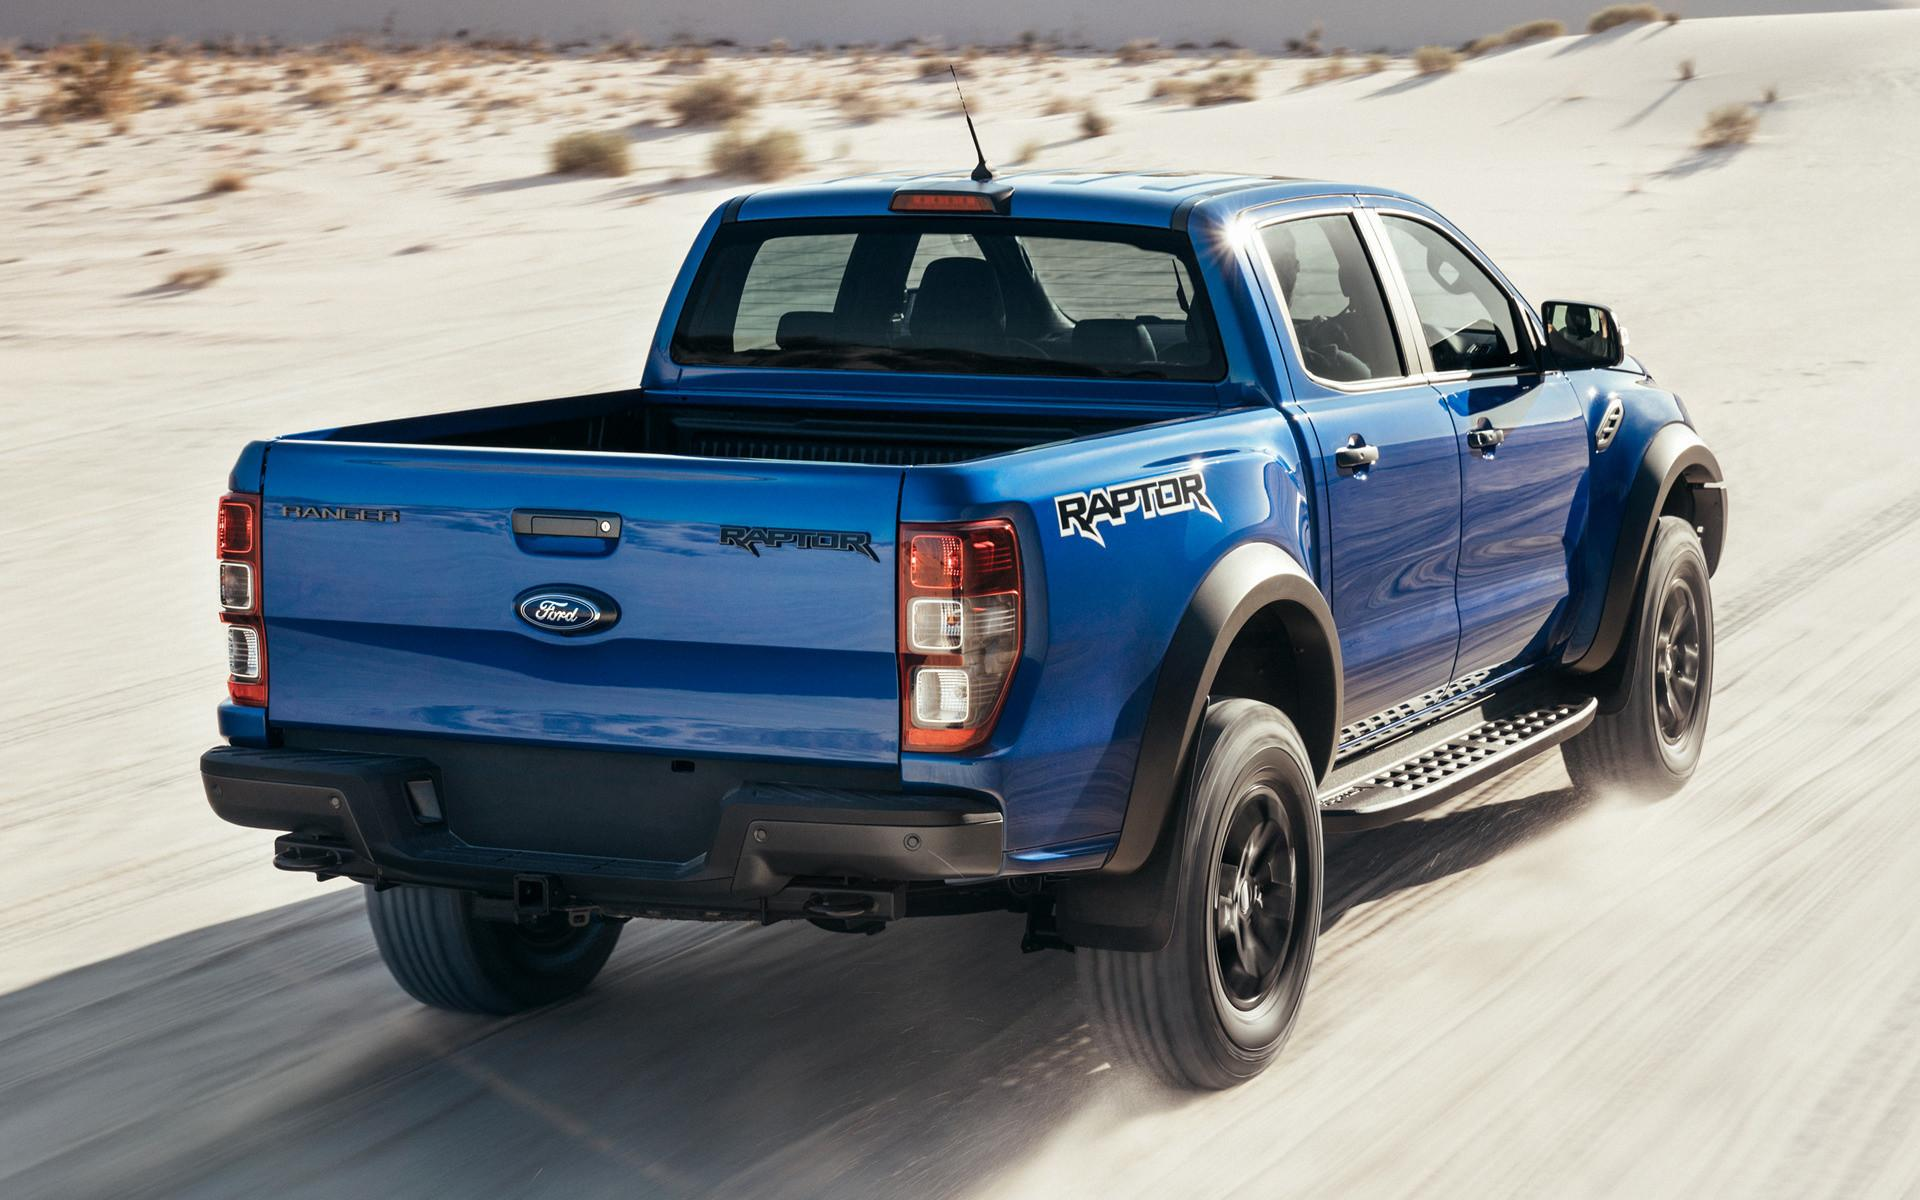 2019 ford Ranger 2020 ford Ranger Image ford Ranger Raptor Wallpapers